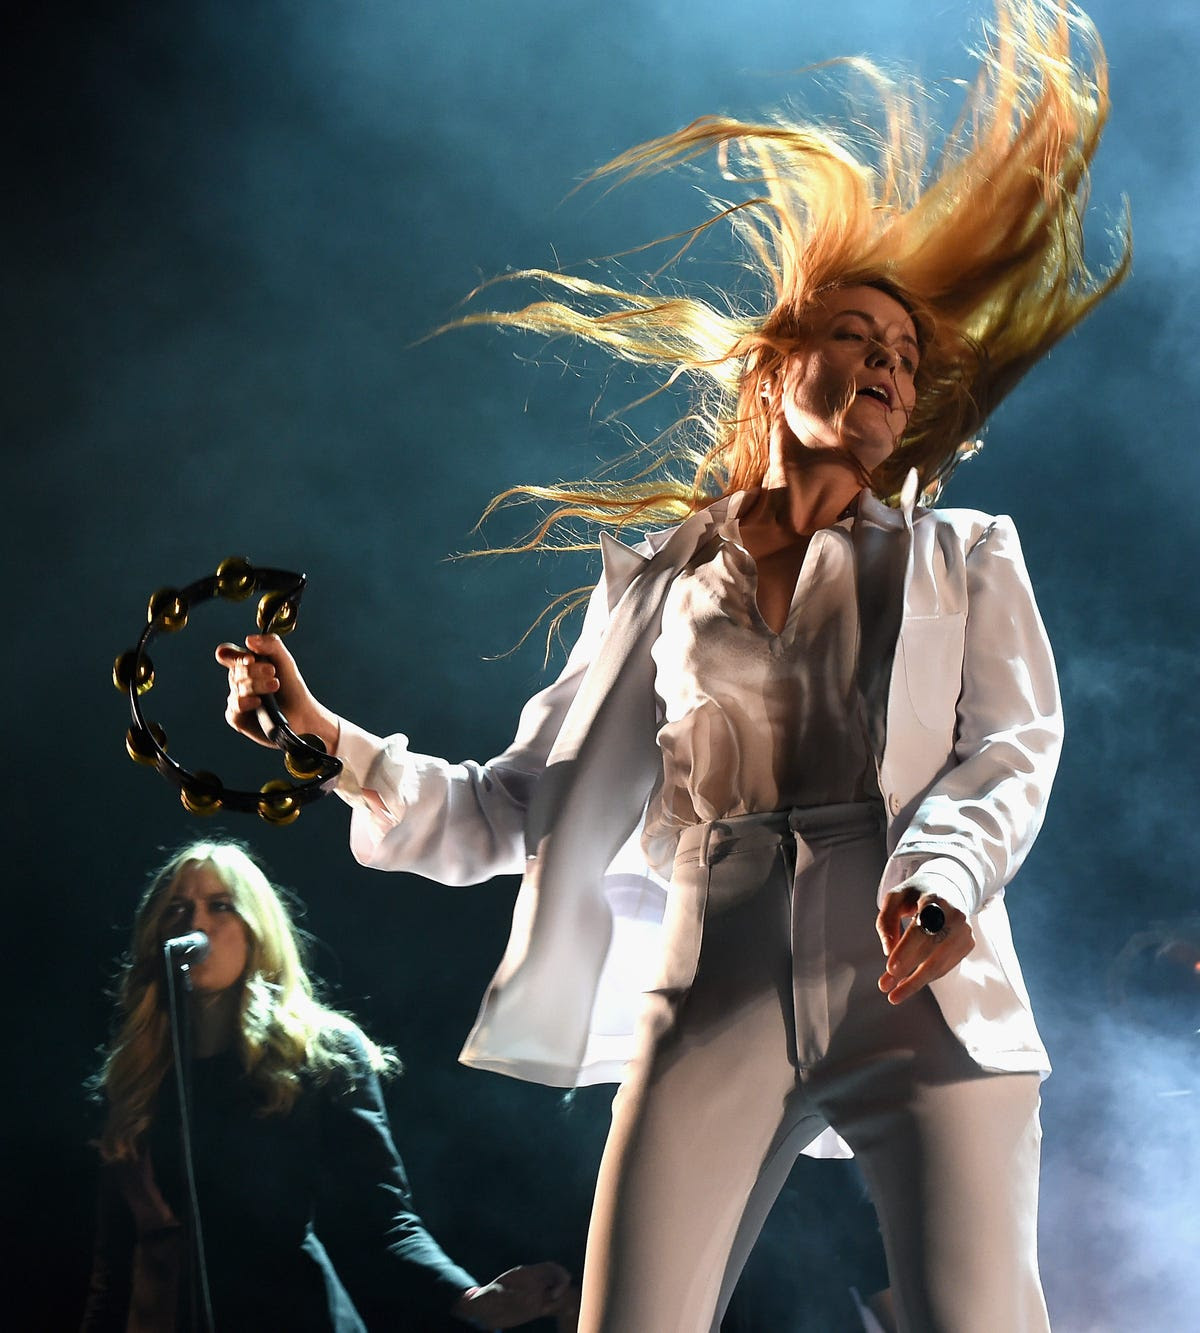 Florence Welch of Florence and the Machine gave one of the most hair-raising performances.